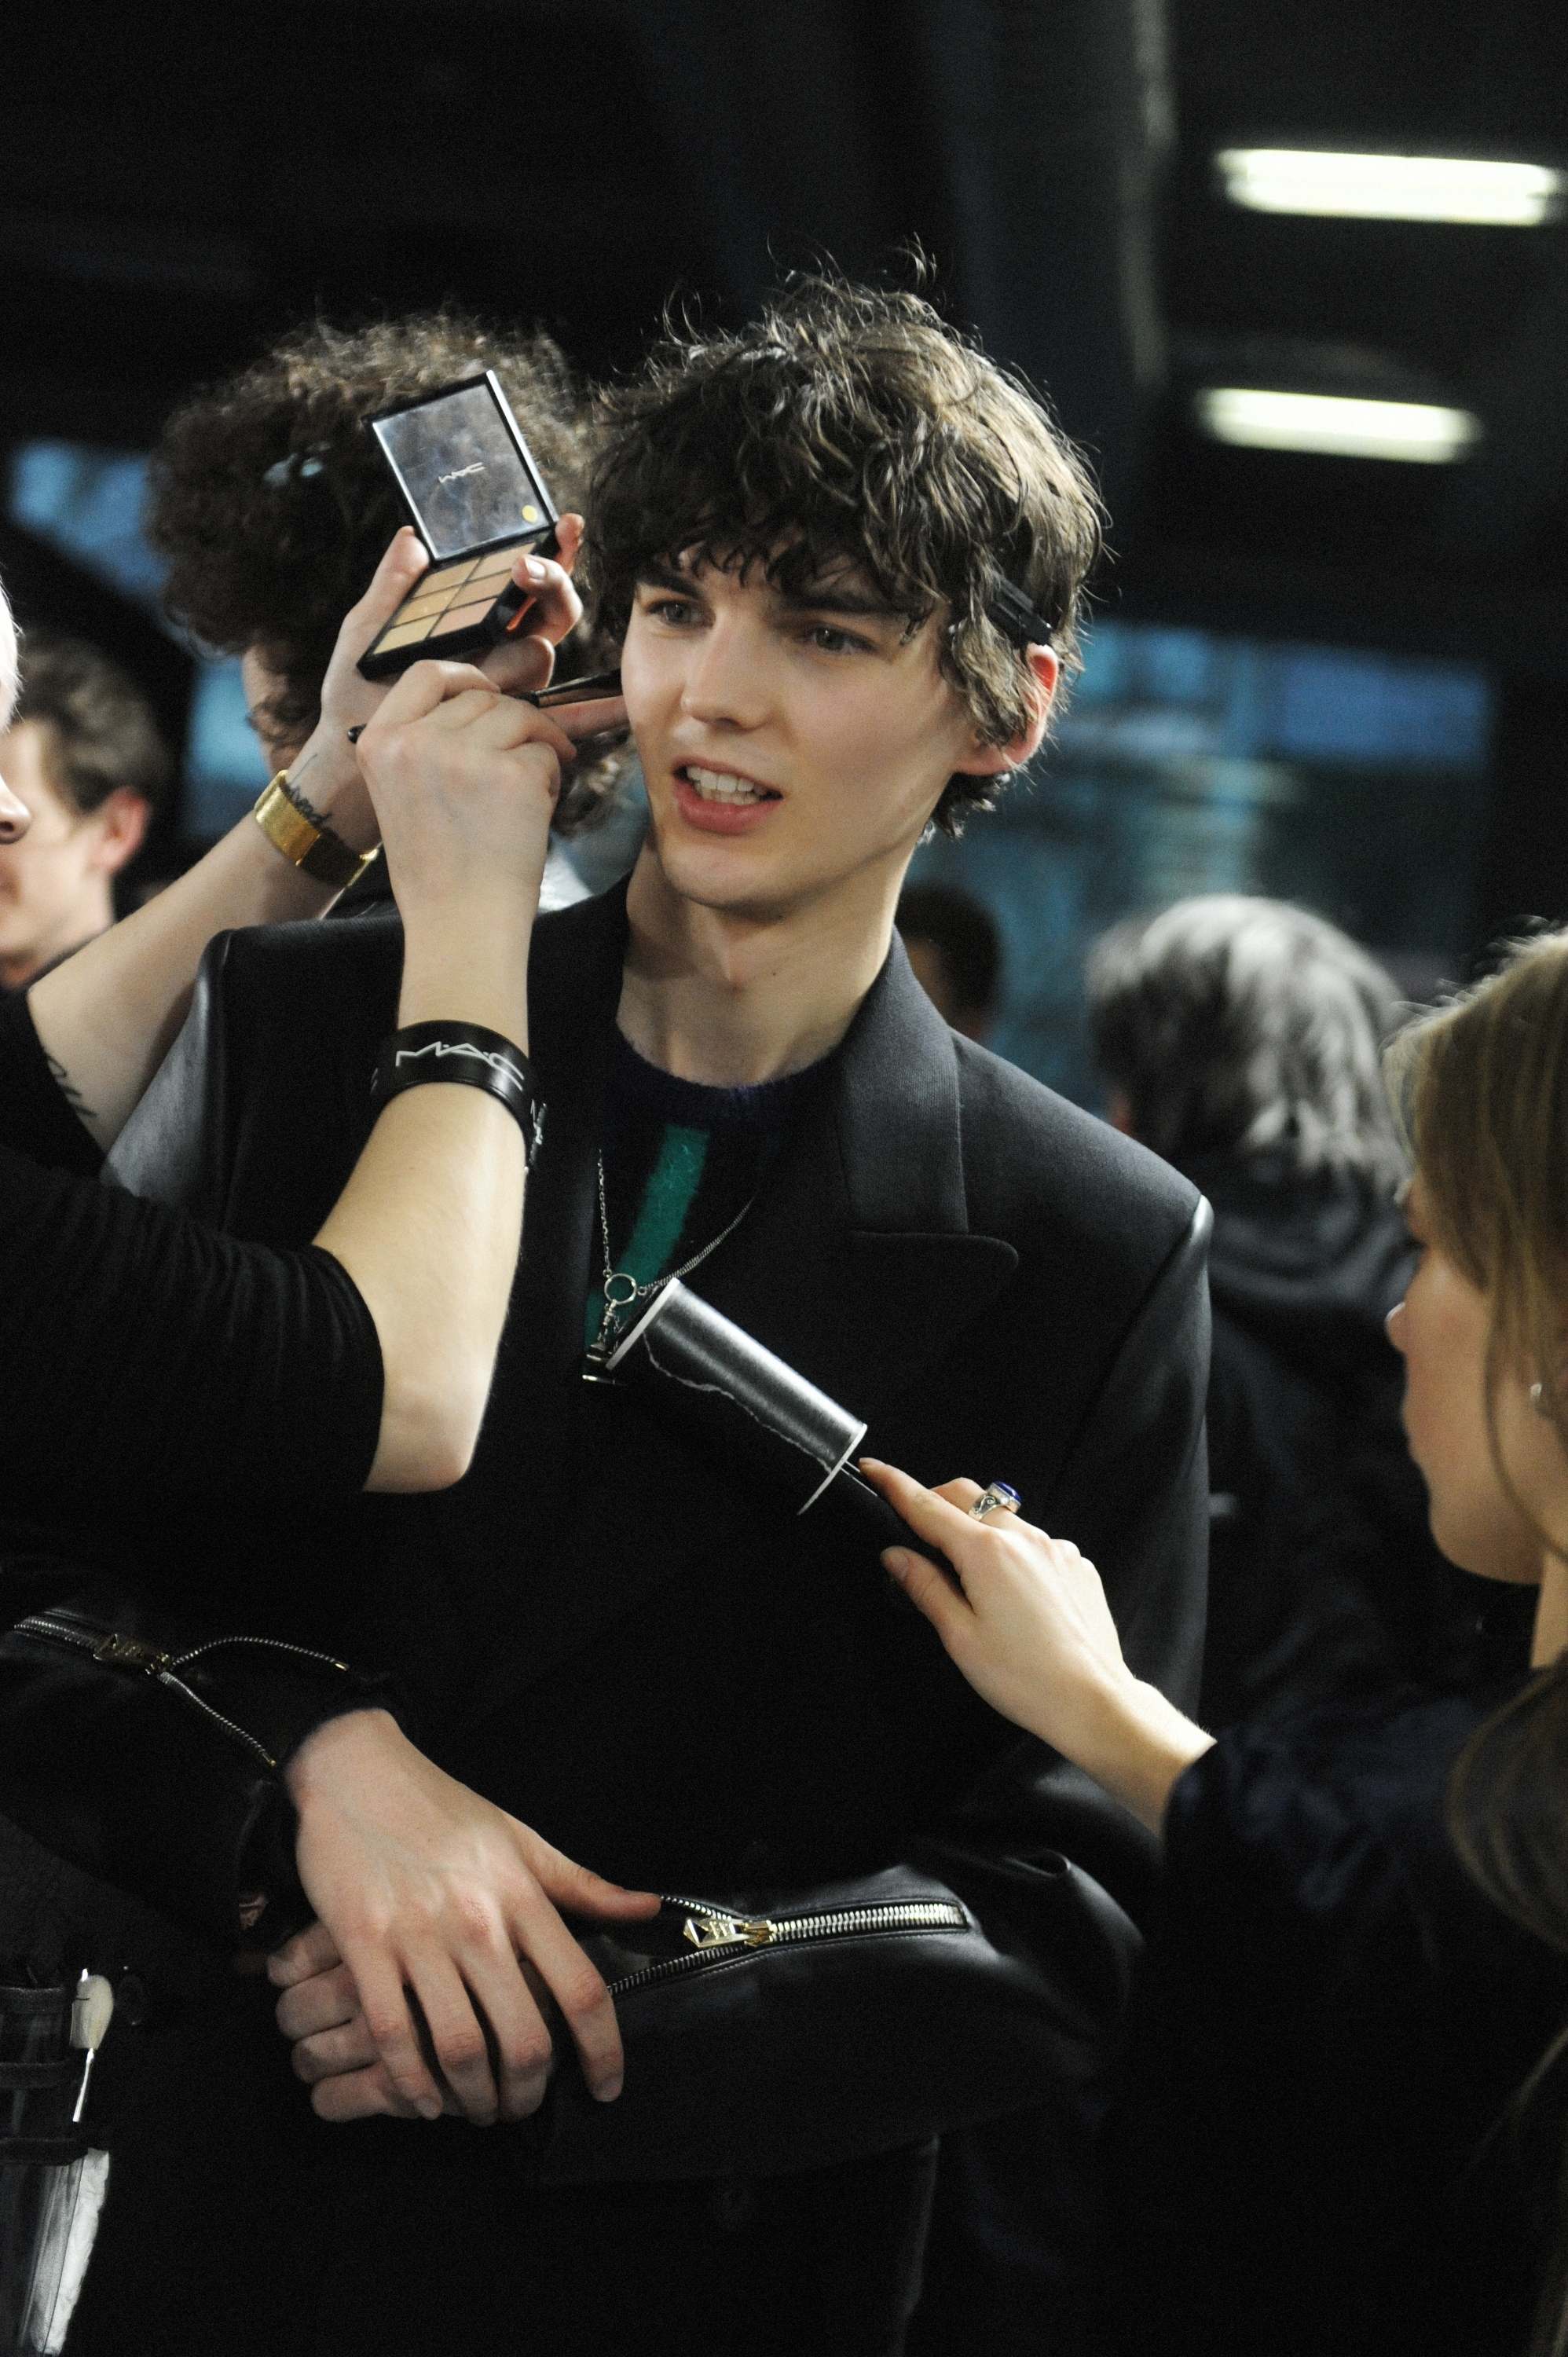 BACKSTAGE AT PAUL SMITH MEN'S A/W 2018